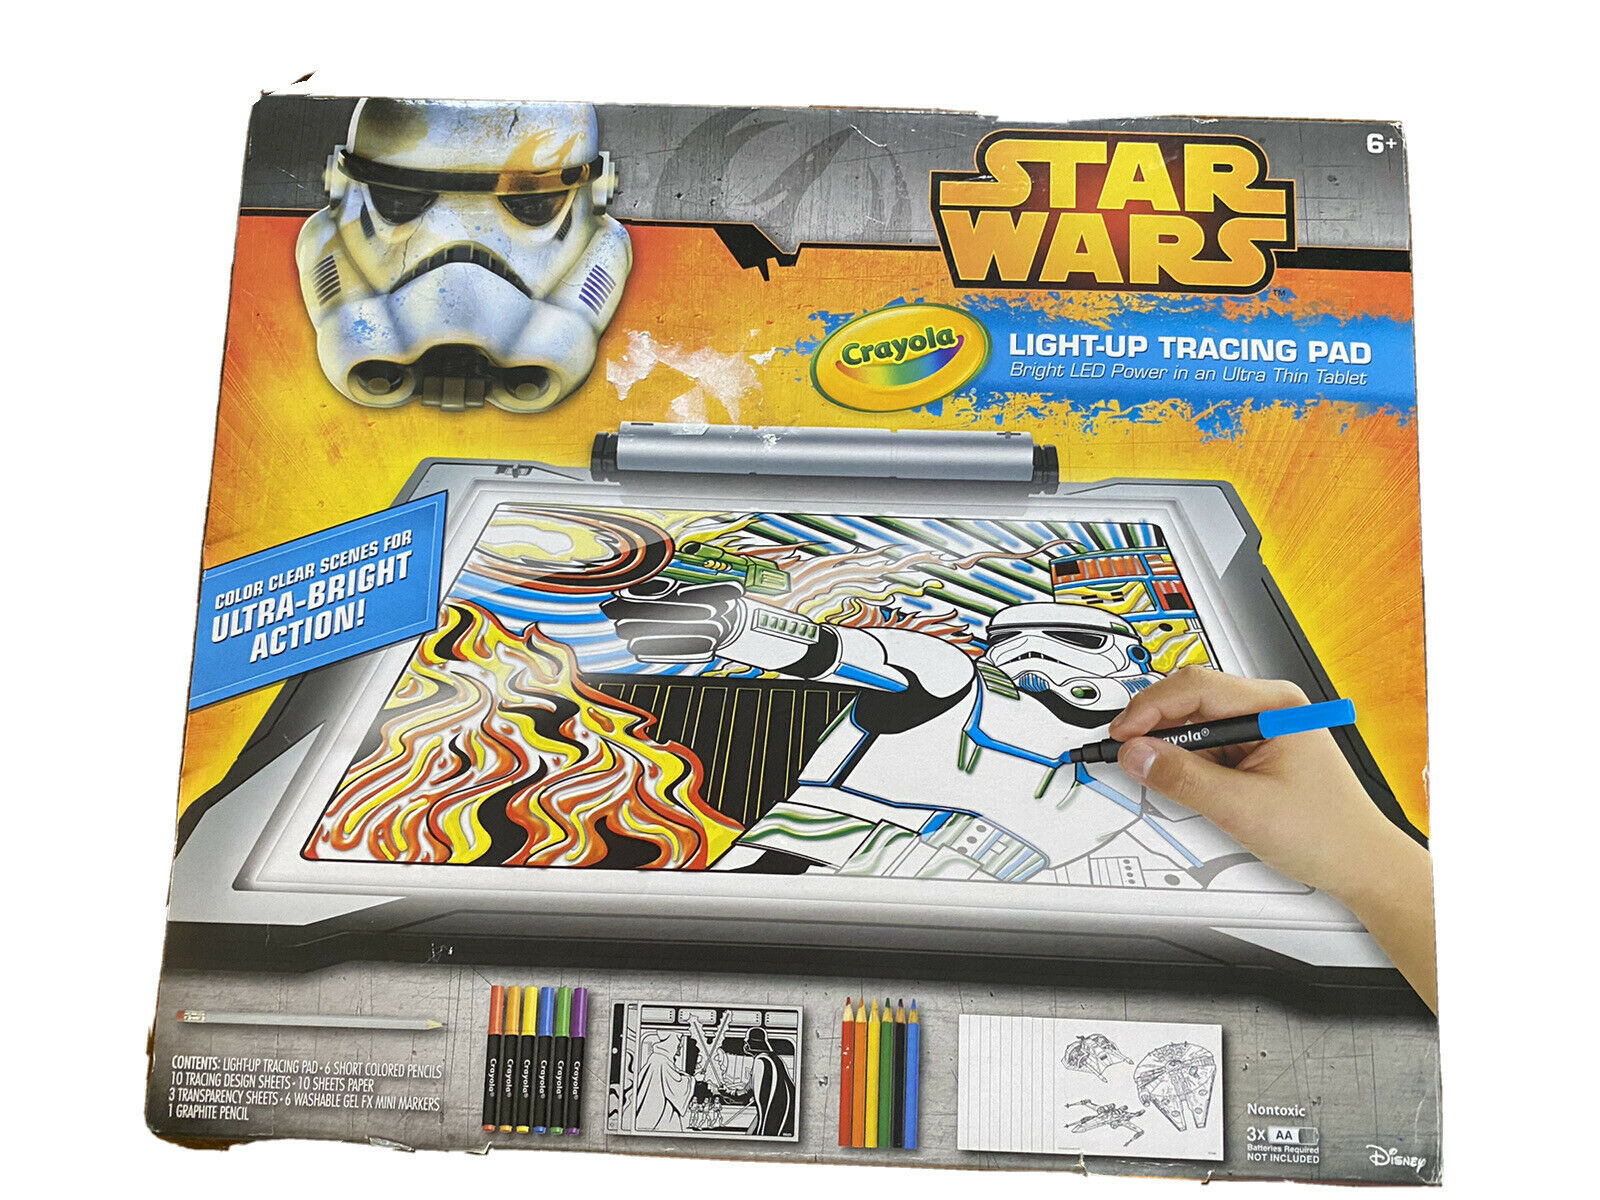 Crayola Star Wars Light Up Tracing Pad 071662068554 For Sale Online Ebay